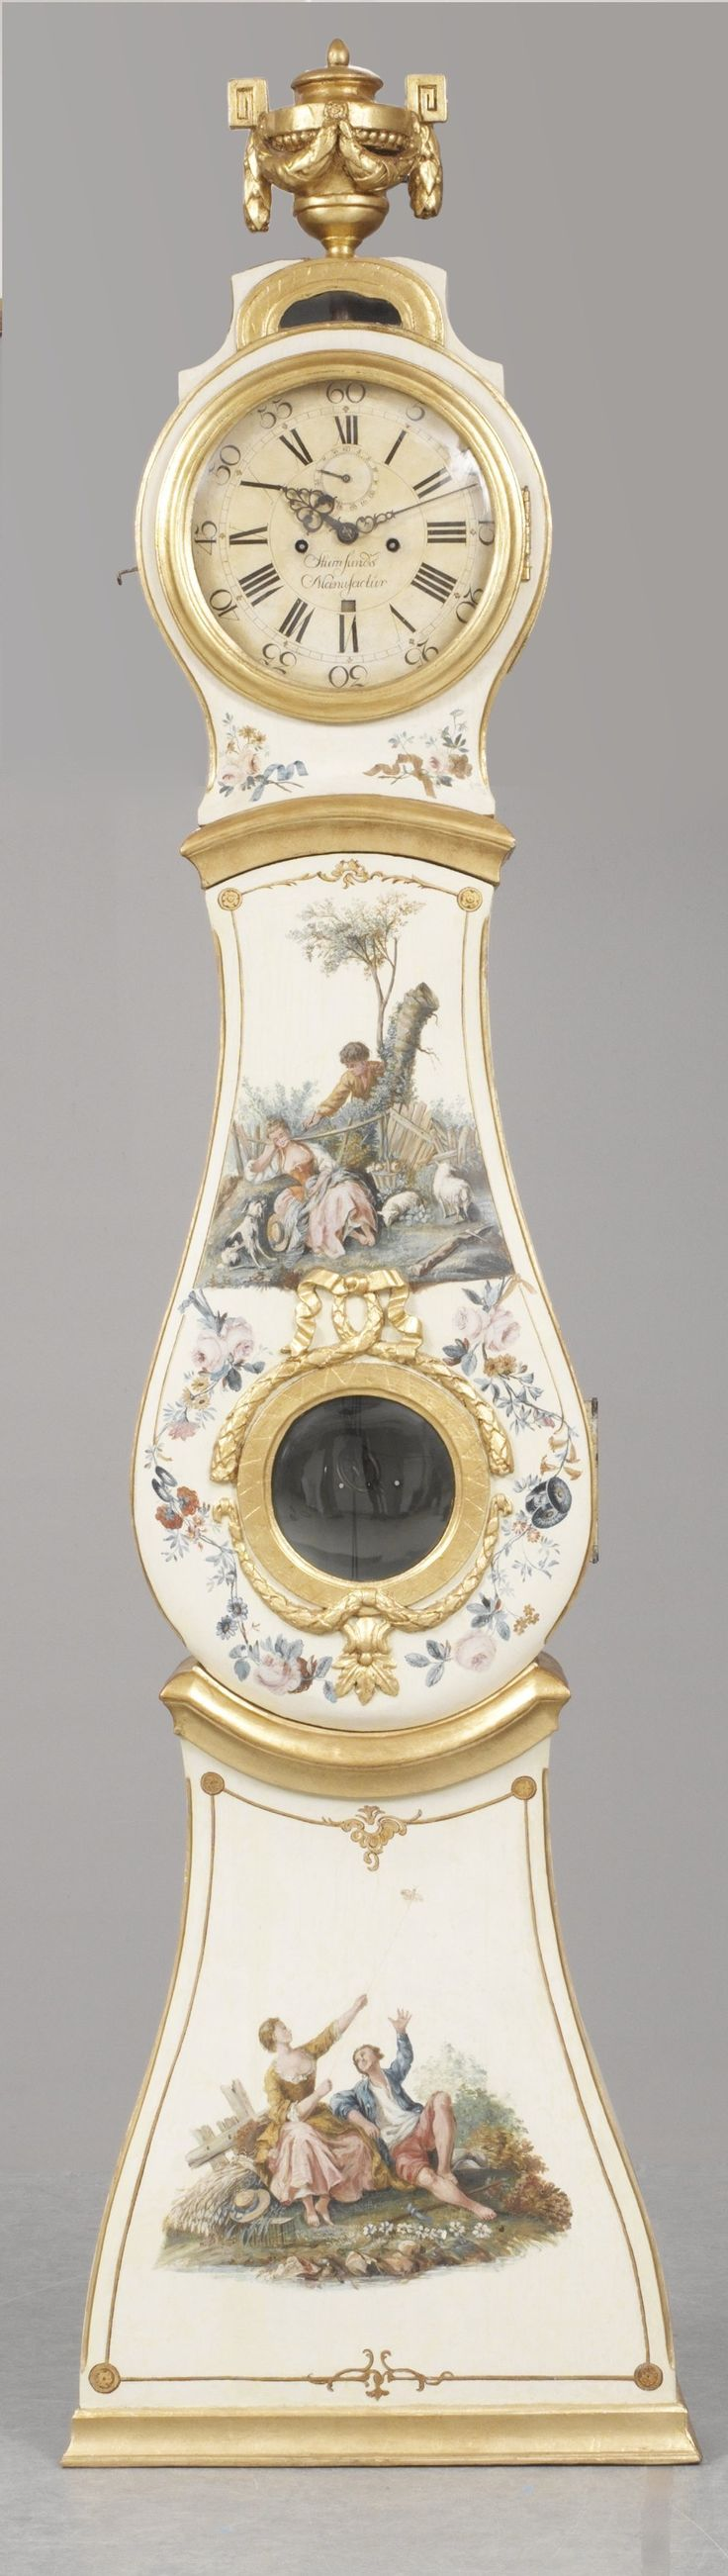 """Swedish tall clock from the Gustavian era (18th C). The clock face is marked """"Stiernsunds Manufactur""""."""